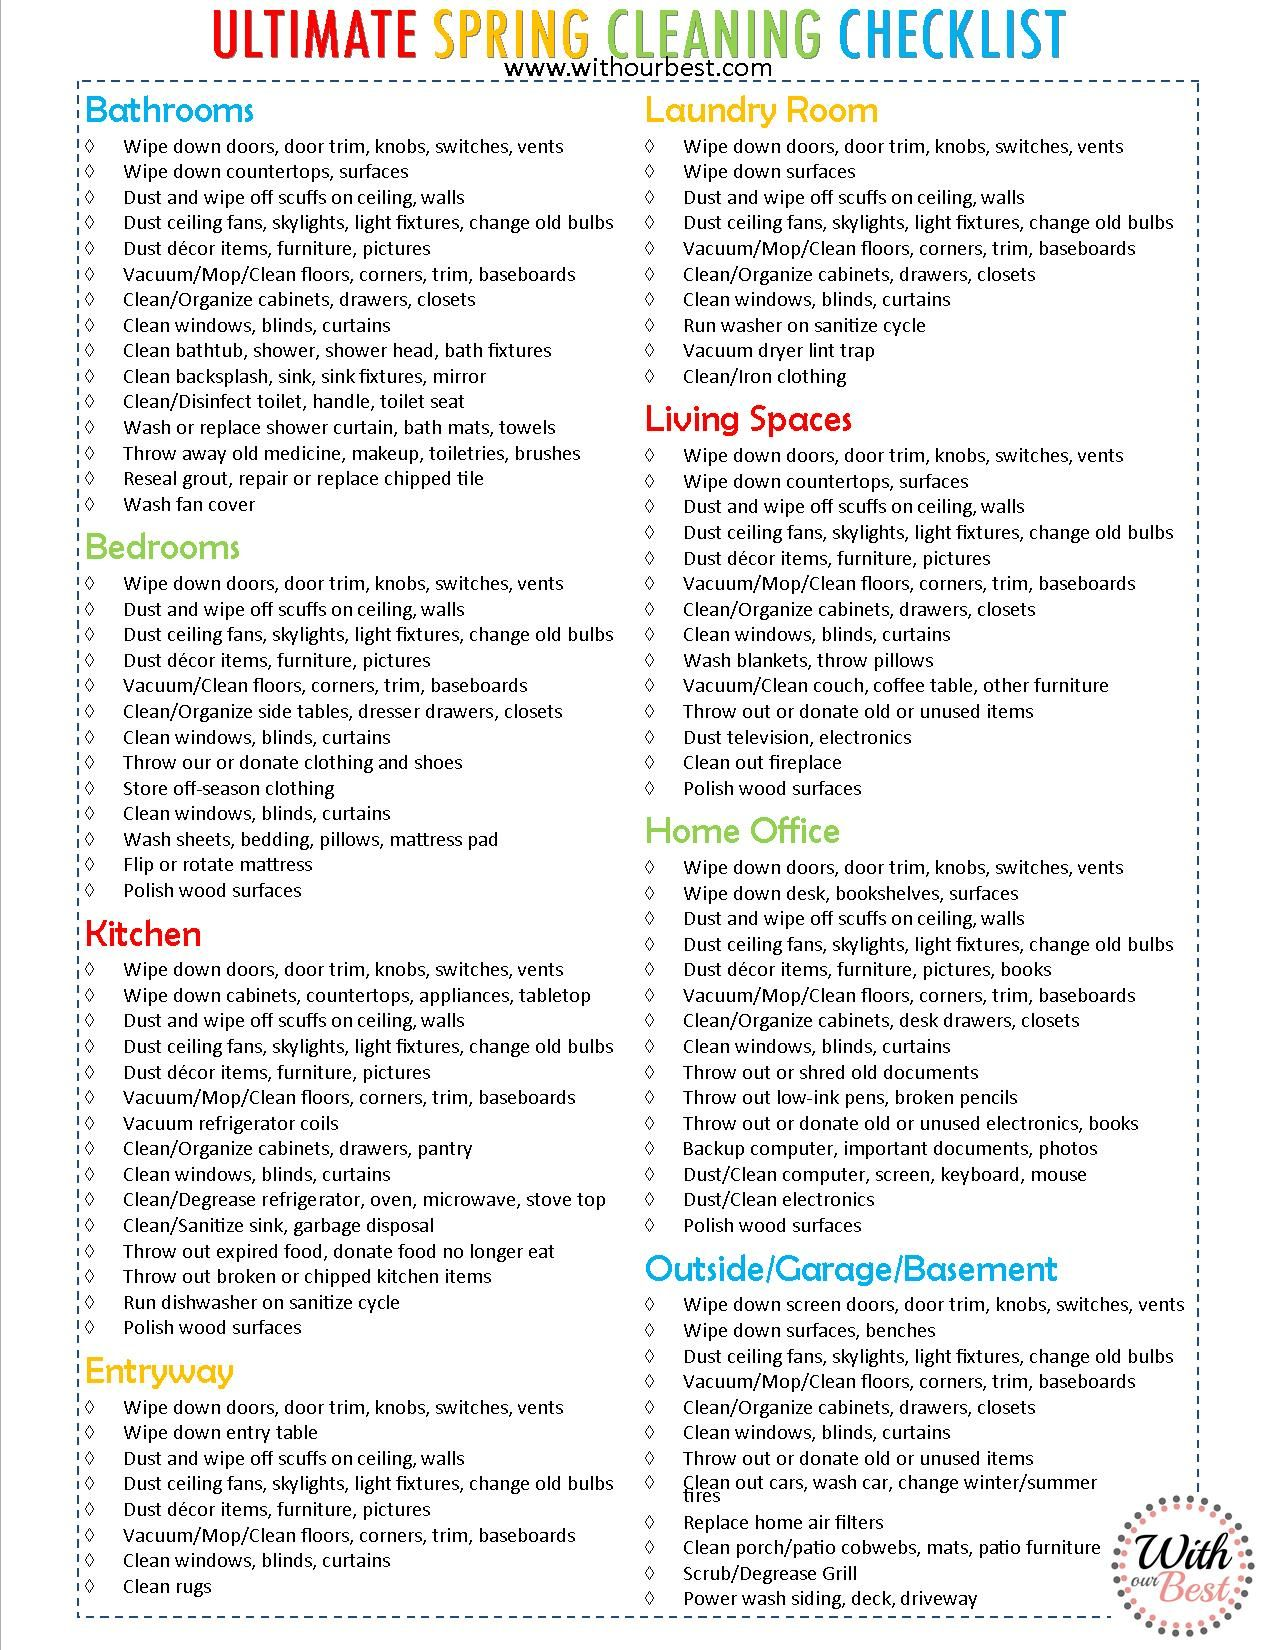 The Ultimate Spring Cleaning Checklist  Cleaning Tips  Cleaning